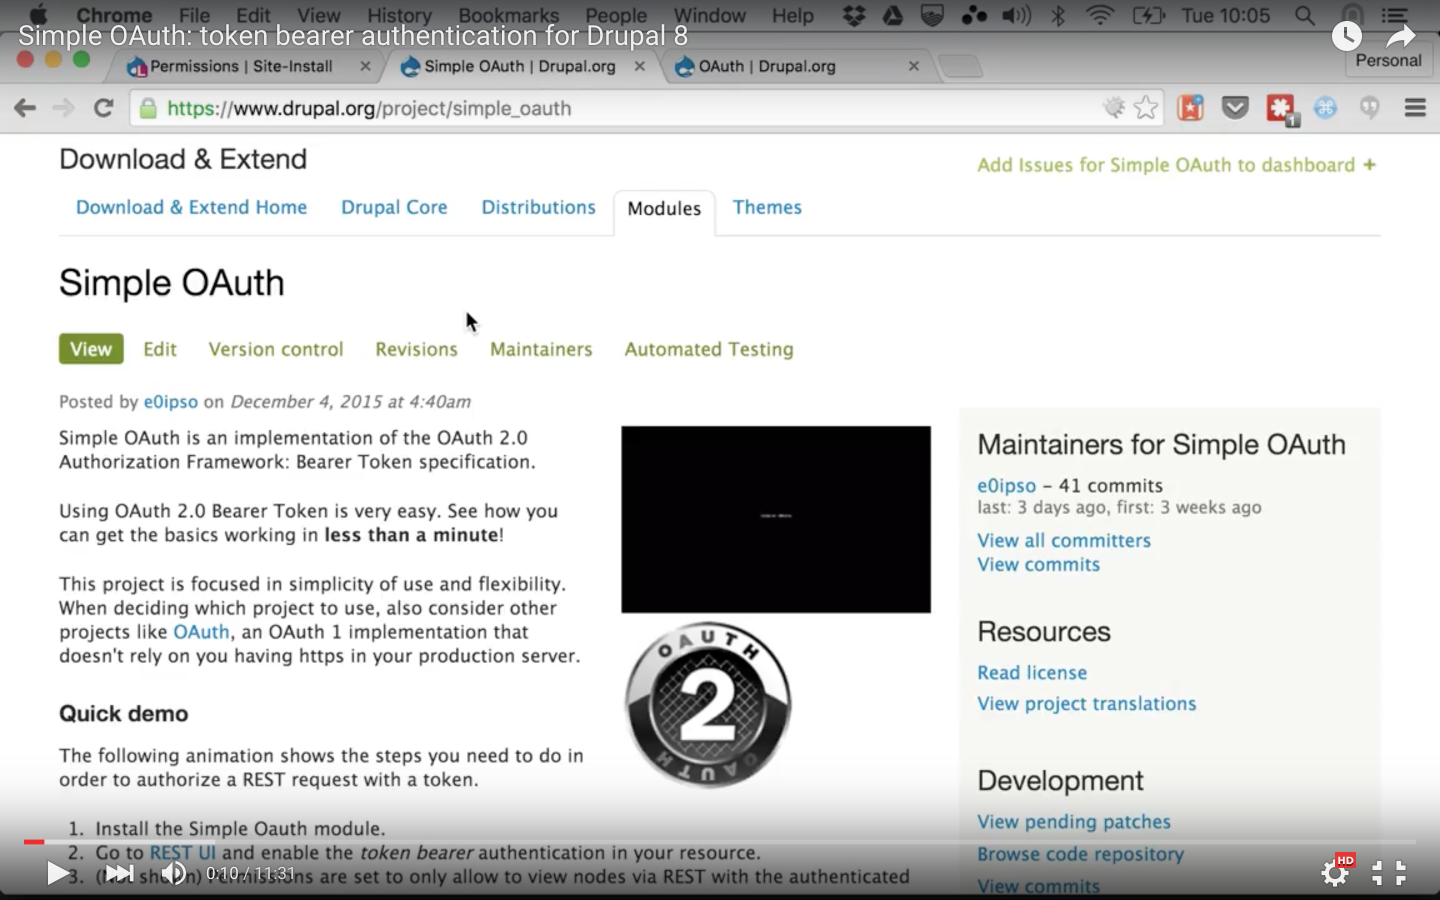 Simple OAuth: token bearer authentication for Drupal 8 | Drupal org